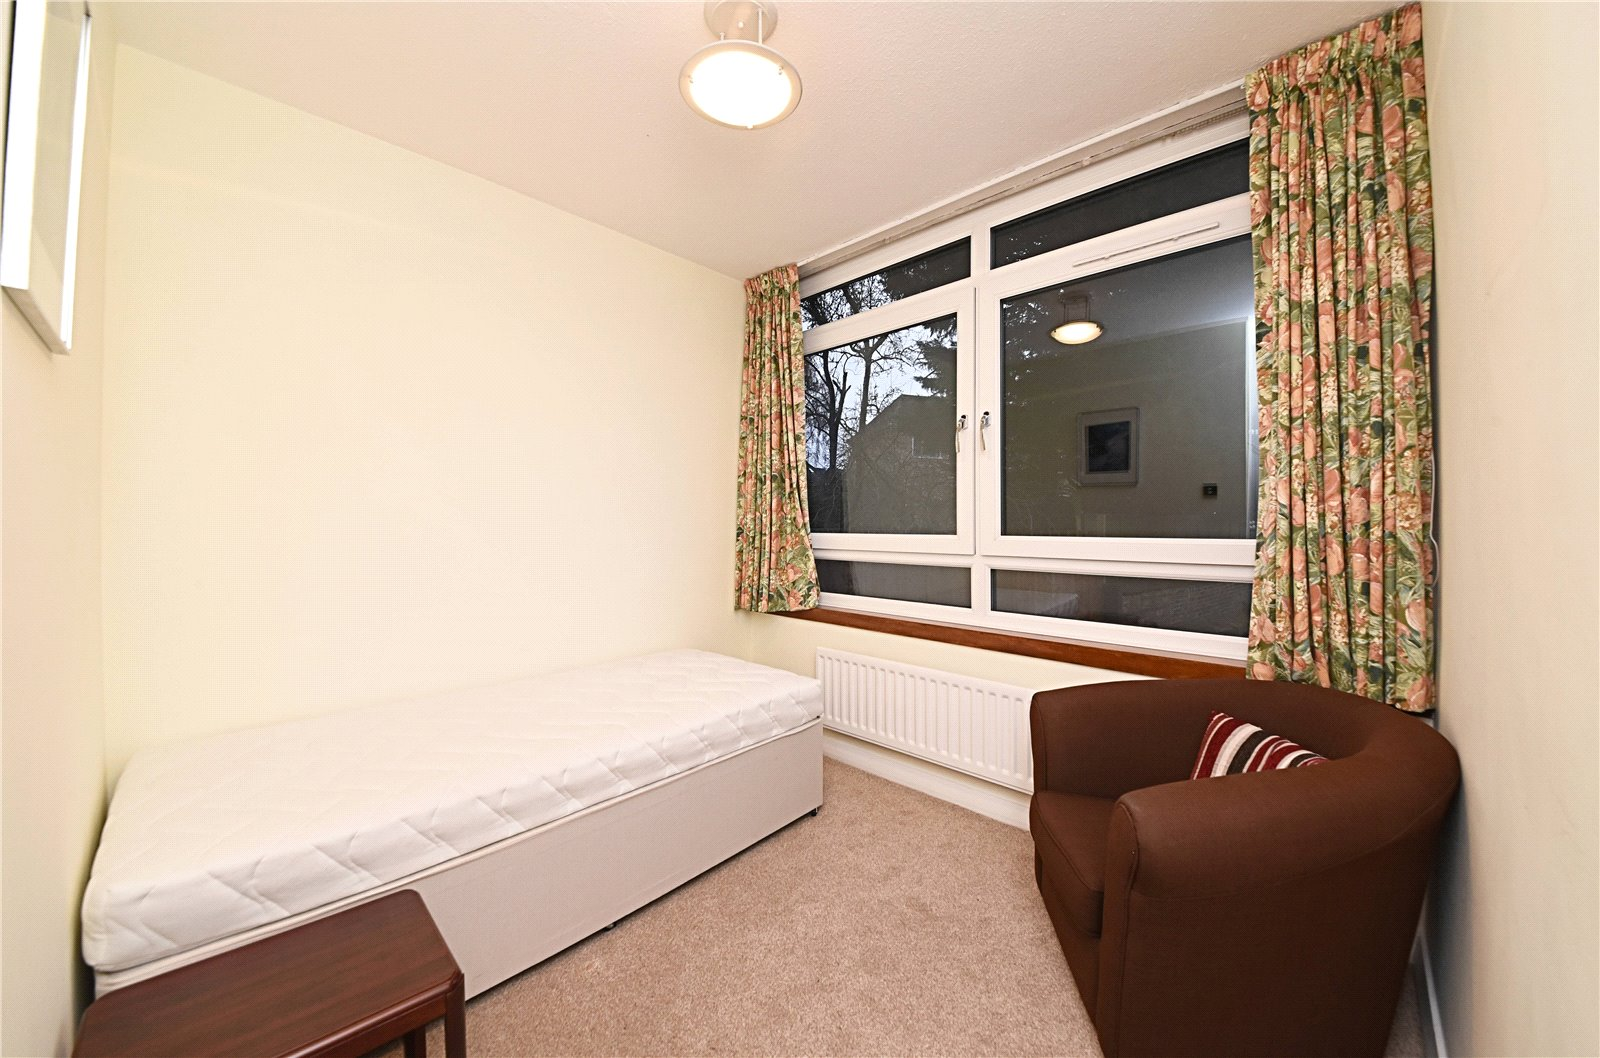 2 bed apartment for sale in Hendon, NW4 1RB 5